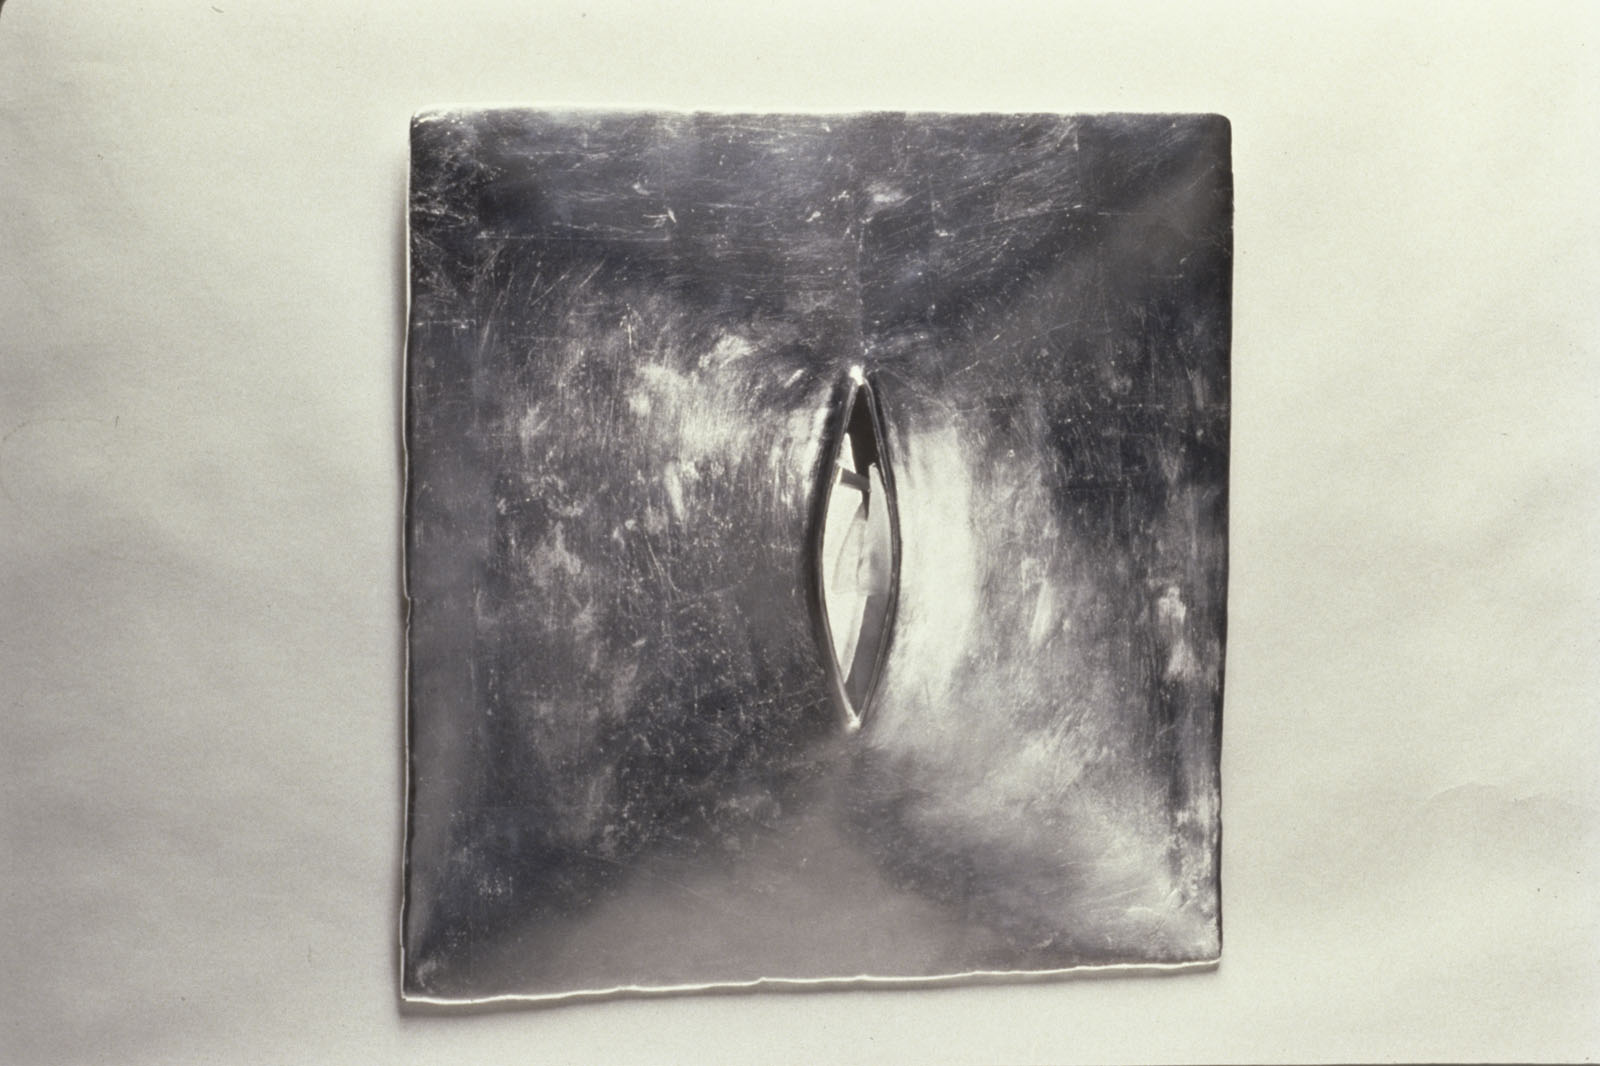 UNTITLED I. 1995 25 x 25 x 7in